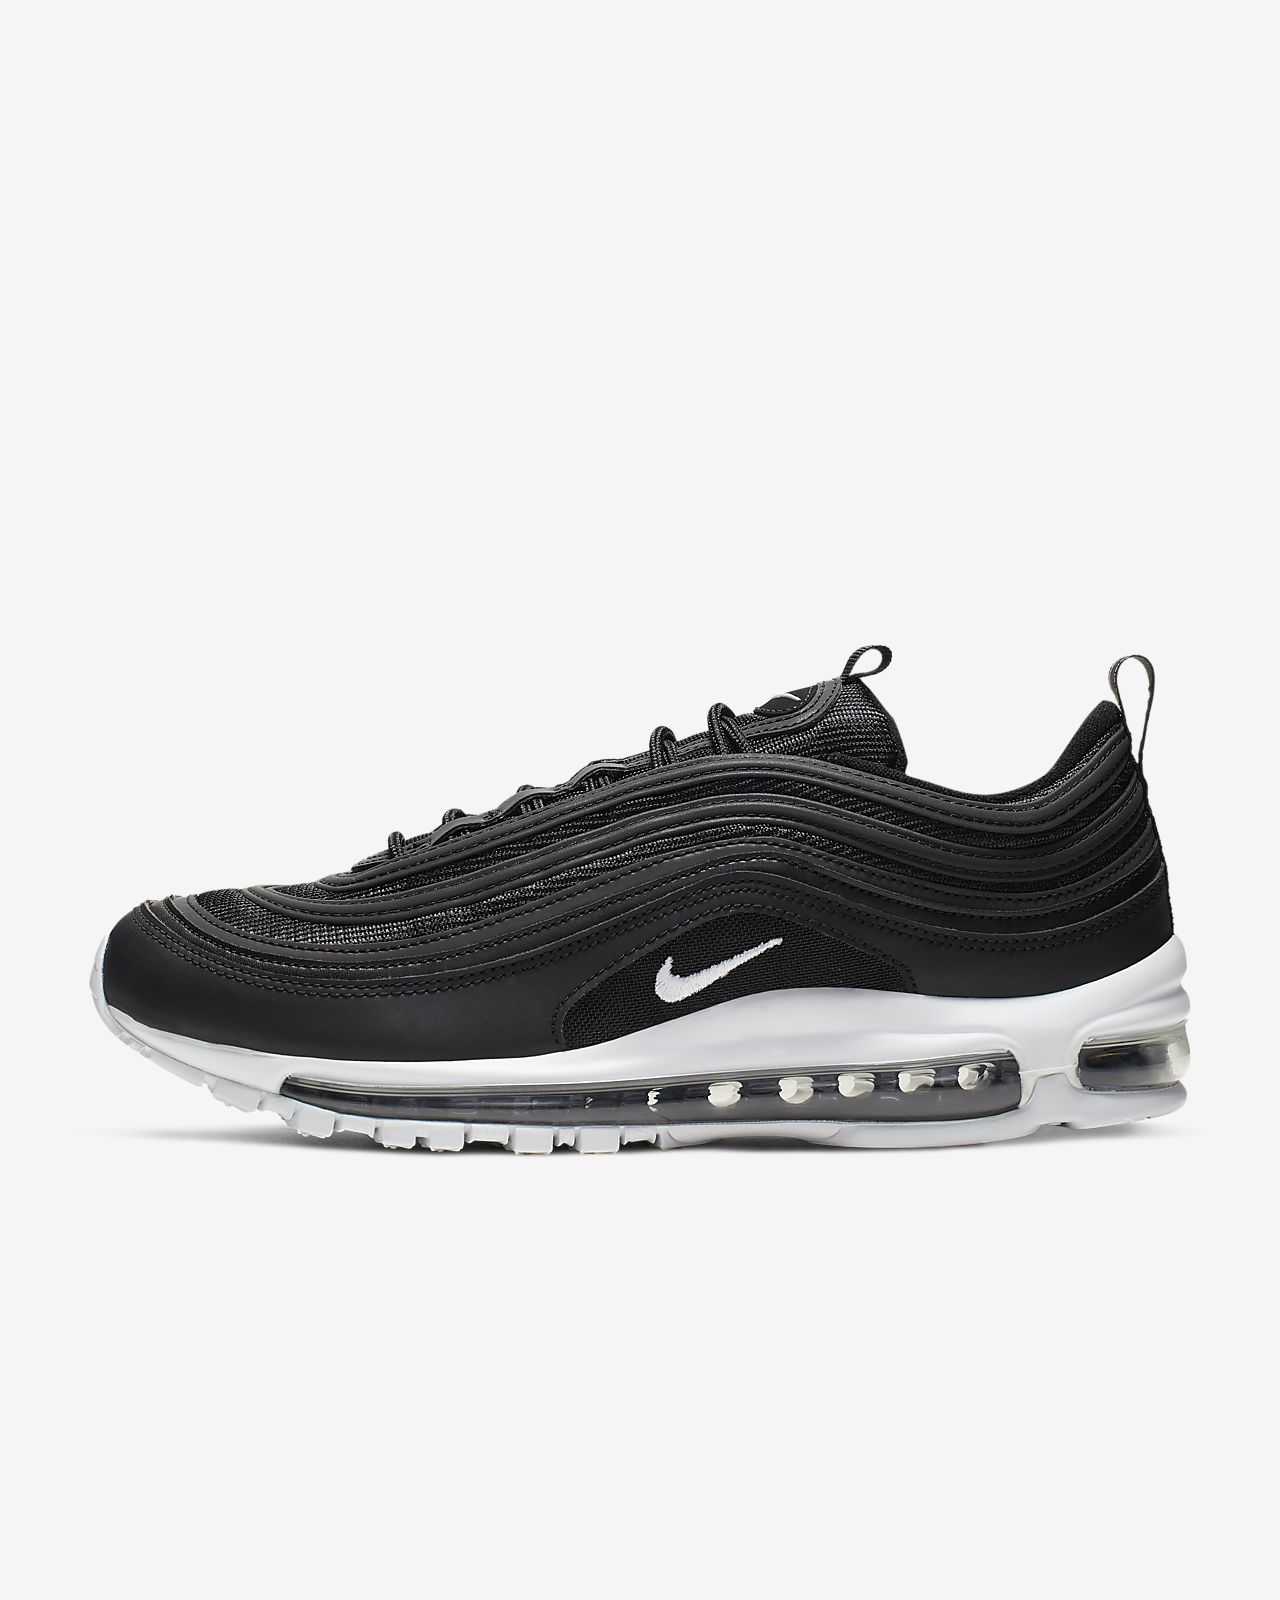 quality design 7921c 2d9aa ... Chaussure Nike Air Max 97 pour Homme